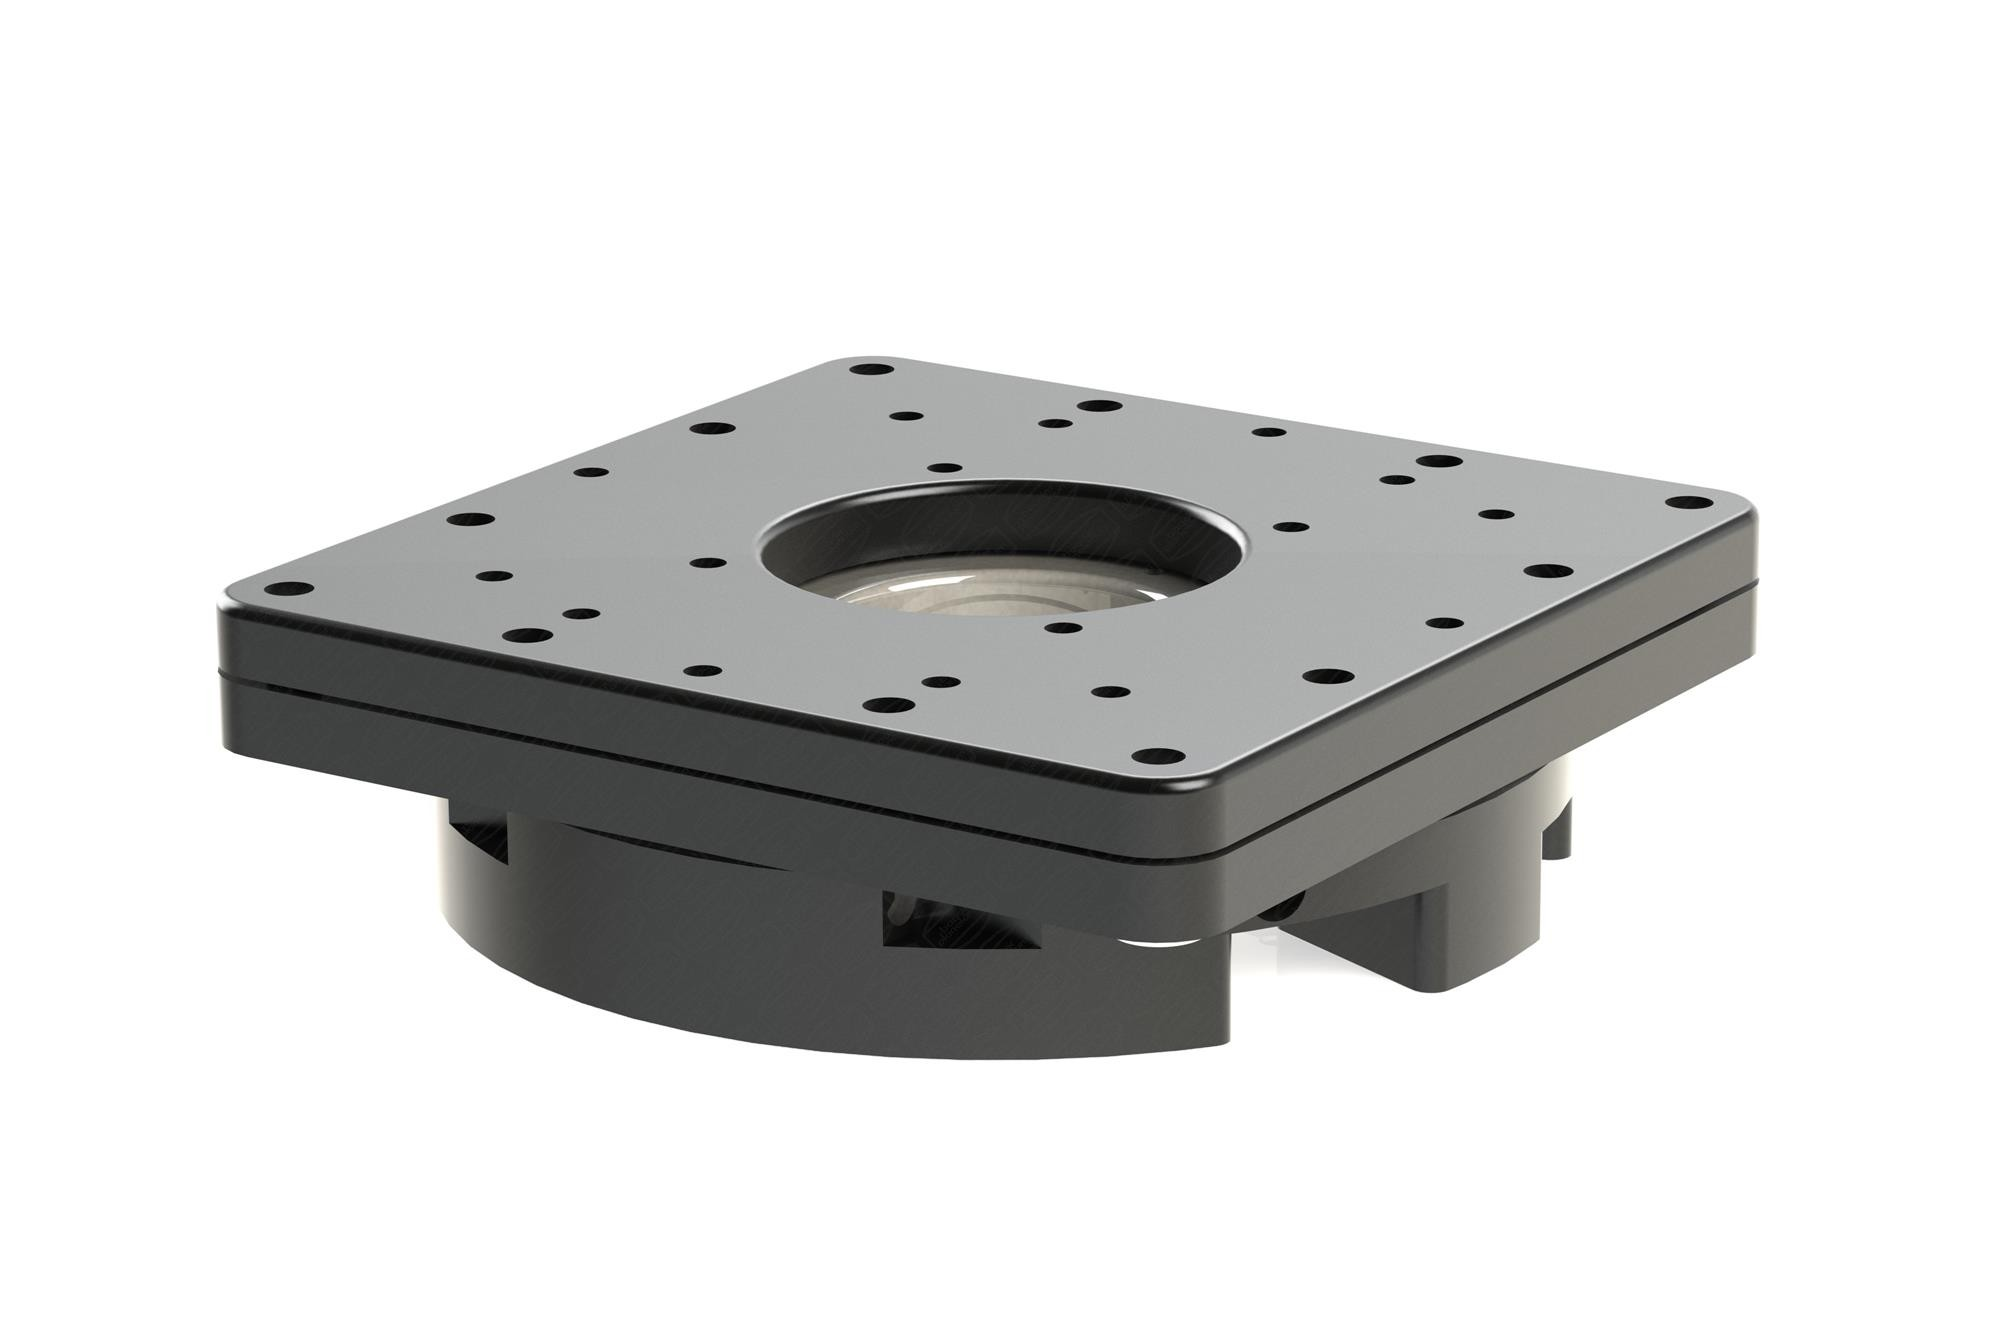 Pan Adjuster for adjusting the optical axis of parallel mounted telescopes